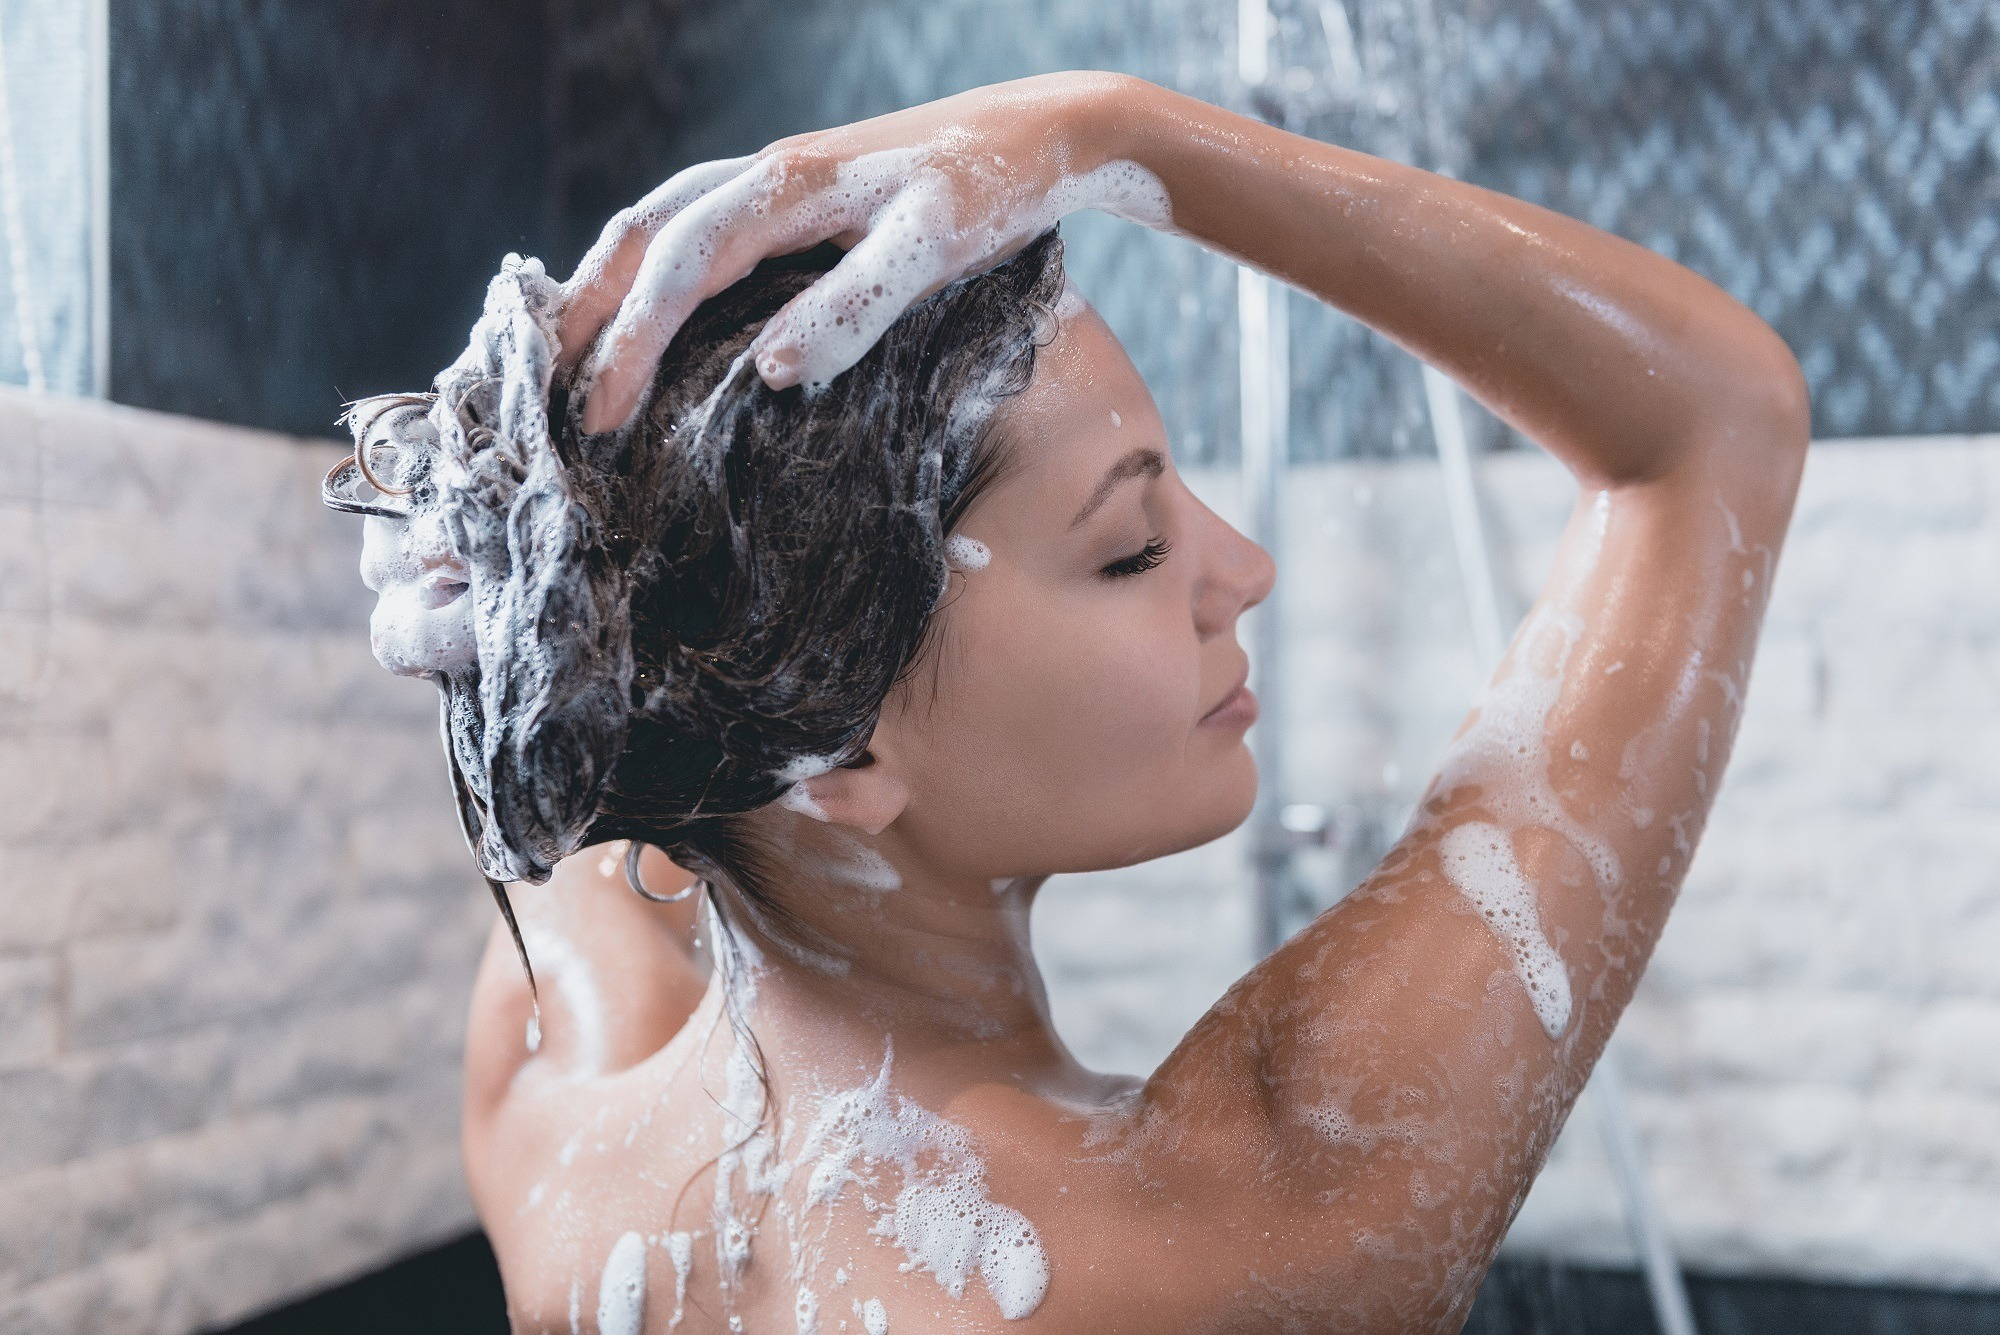 How to get beautiful hair: Closeup shot of a woman in the shower shampooing her hair